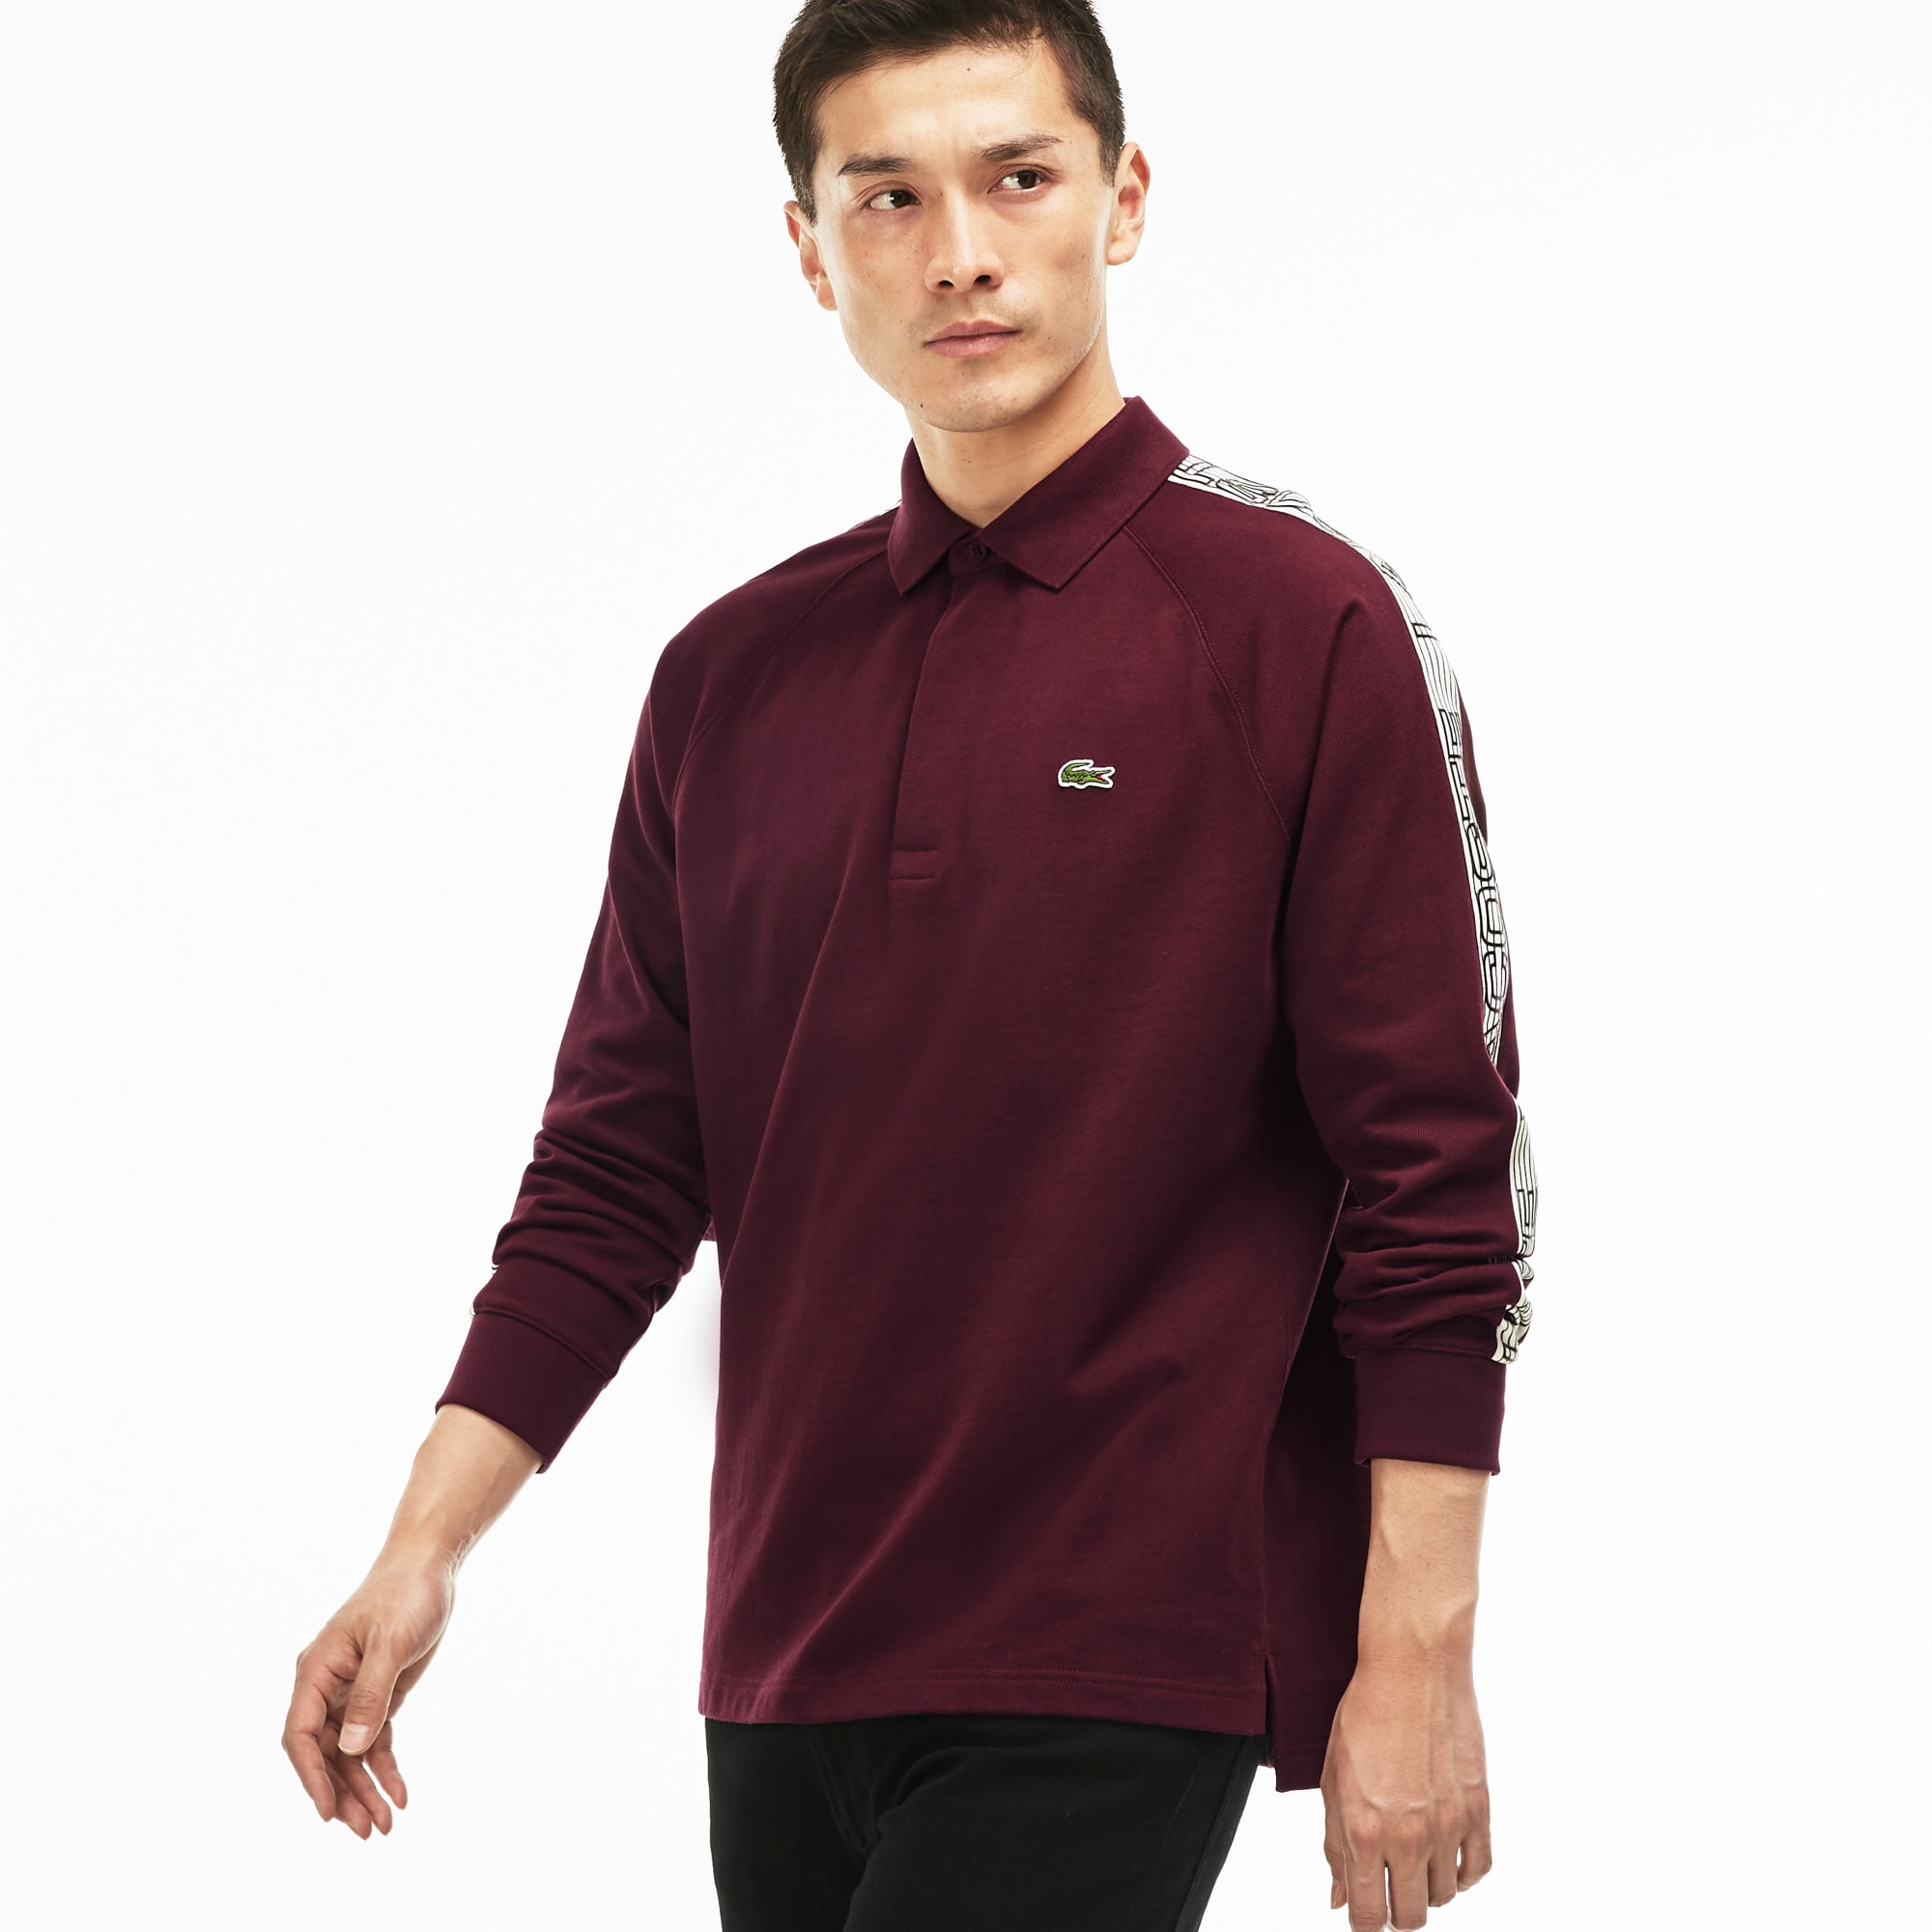 Men's  Contrast Band Jersey Polo